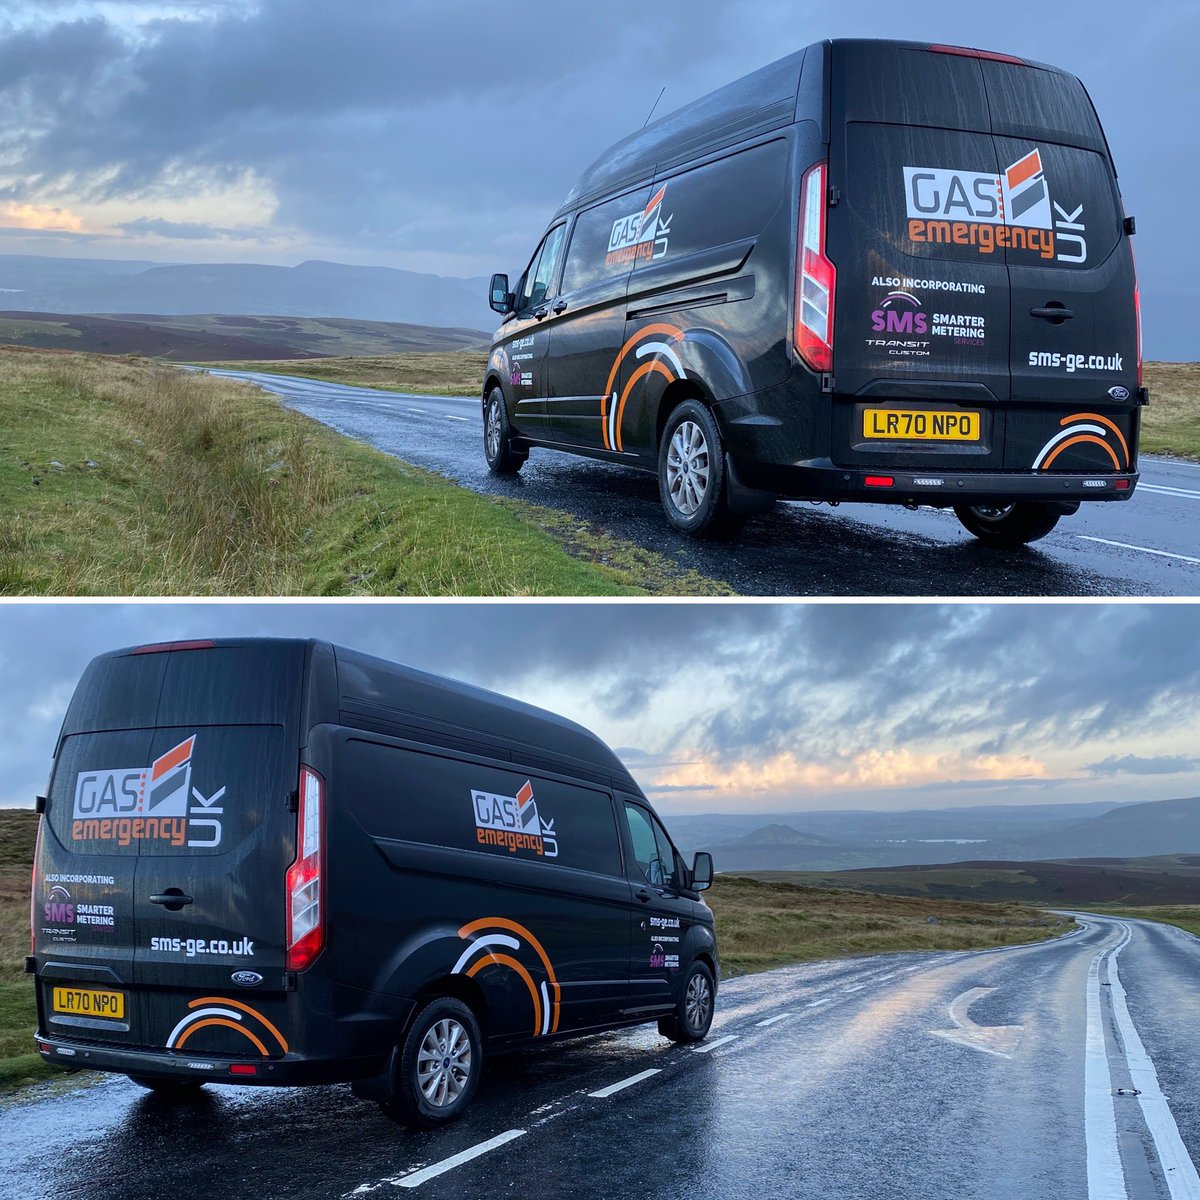 The new fleet hit the valleys of Wales 🏴 this week... We know everyone should appreciate these views. 🤩